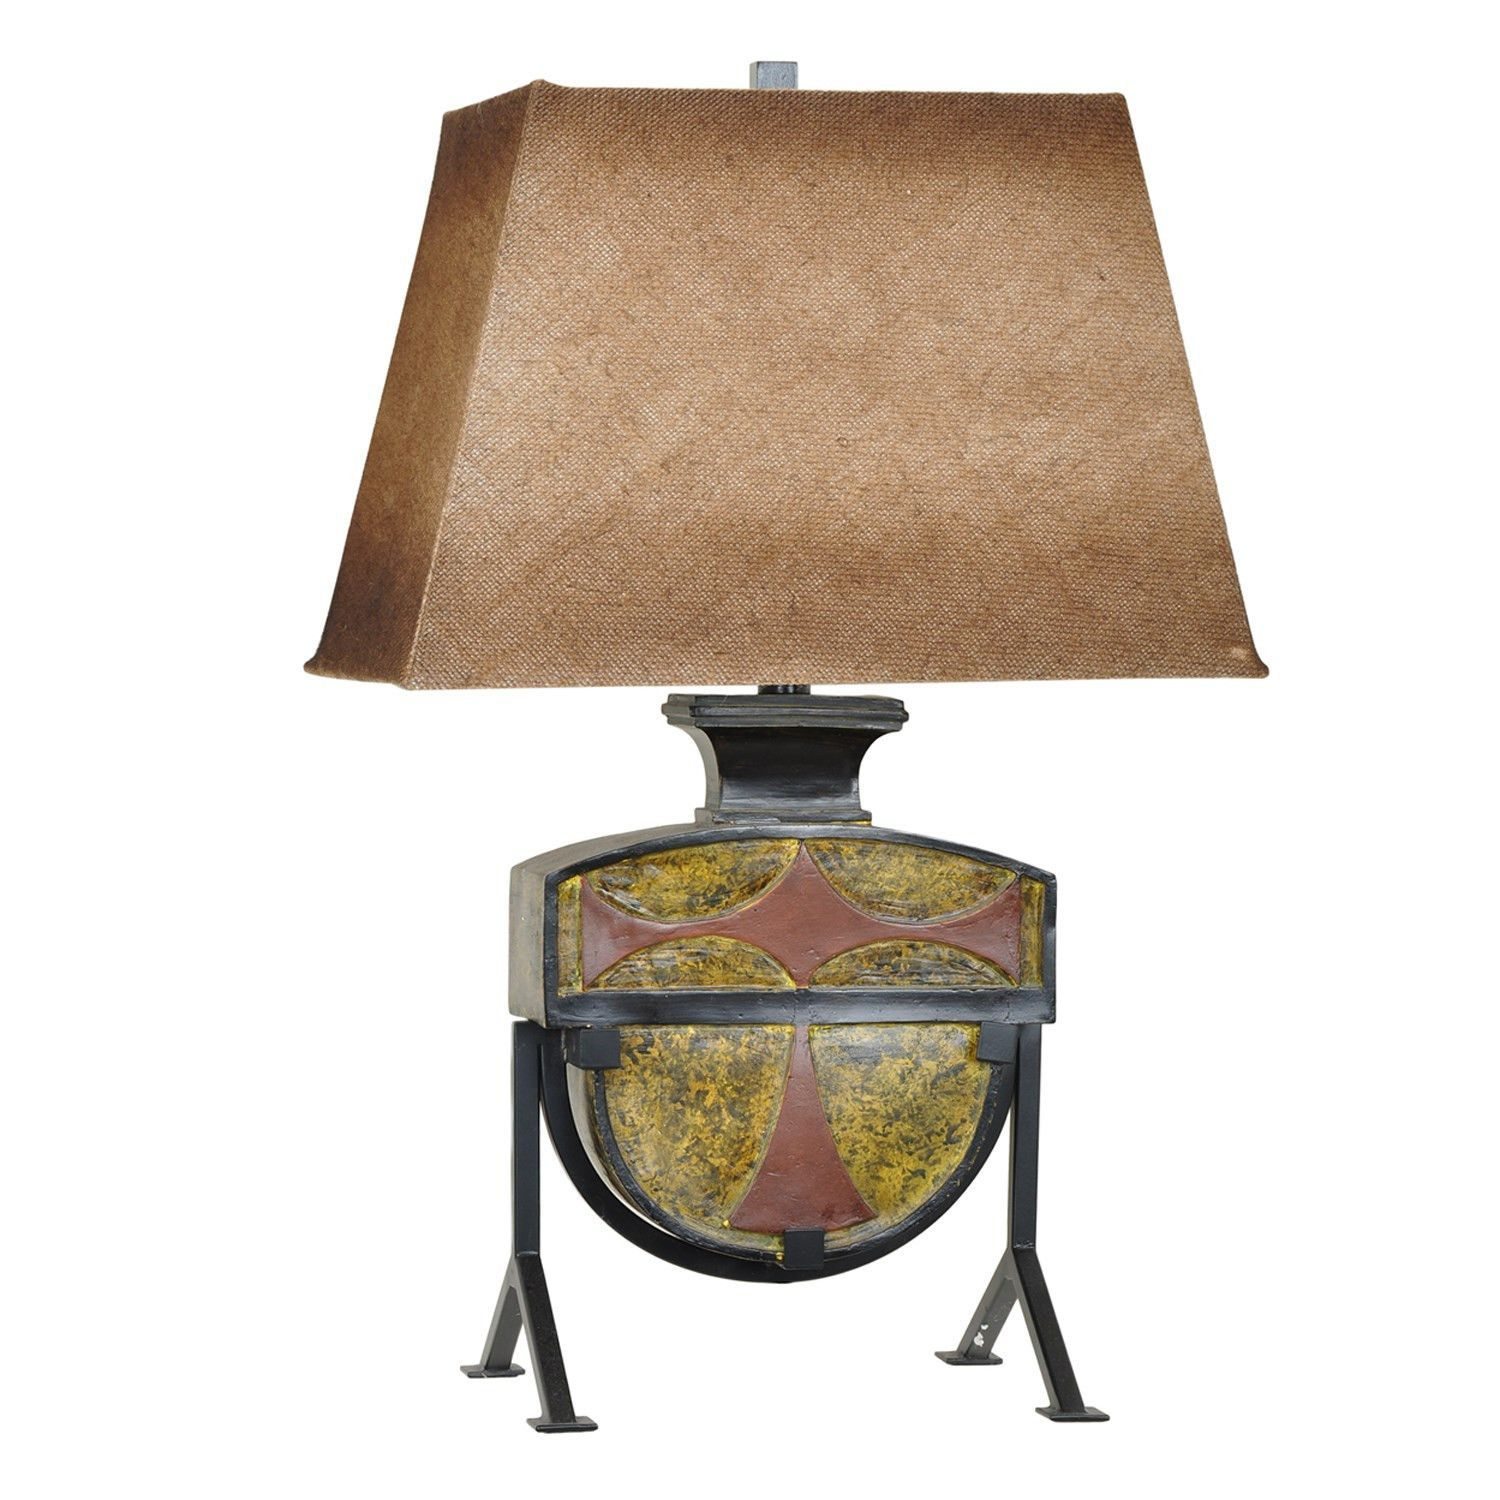 Crestview relic table lamp cvavp457 products crestview relic table lamp cvavp457 geotapseo Gallery